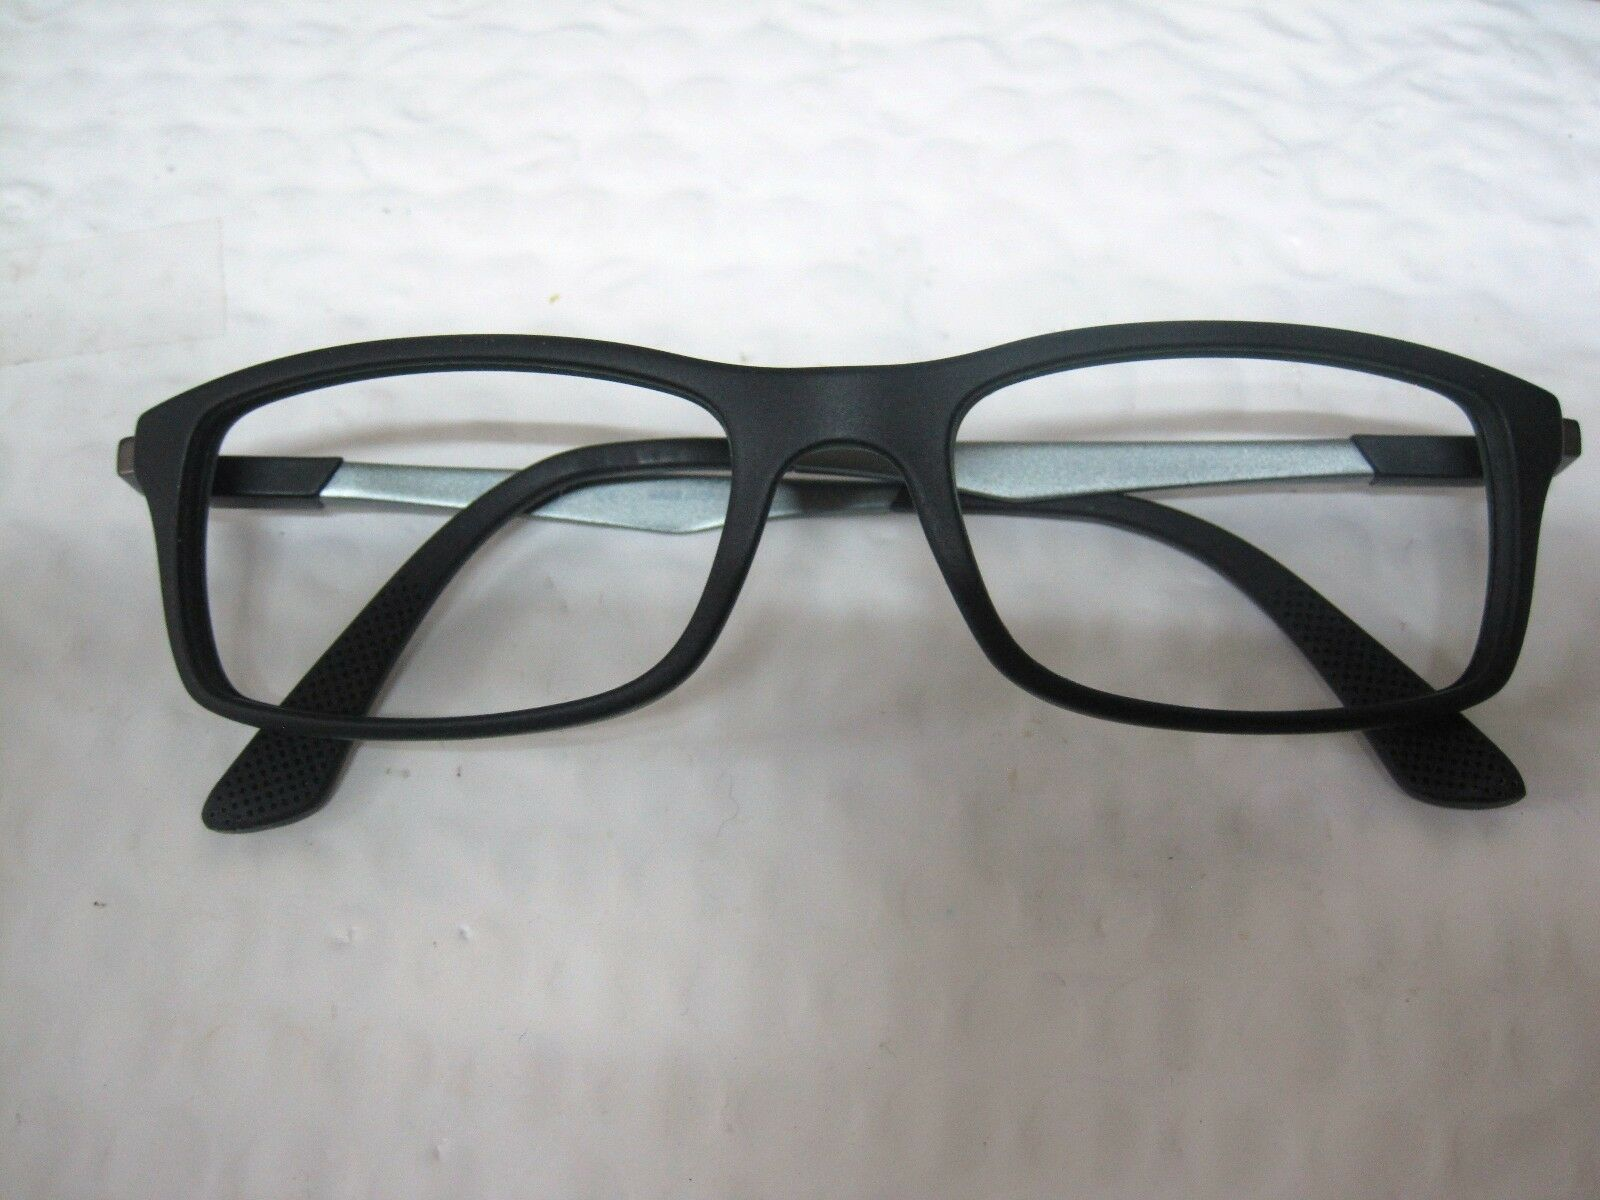 1082dde140 ... EAN 8053672061826 product image for Authentic Ray-ban Rb 7017 5197  Black Green Eyeglass Frames ...